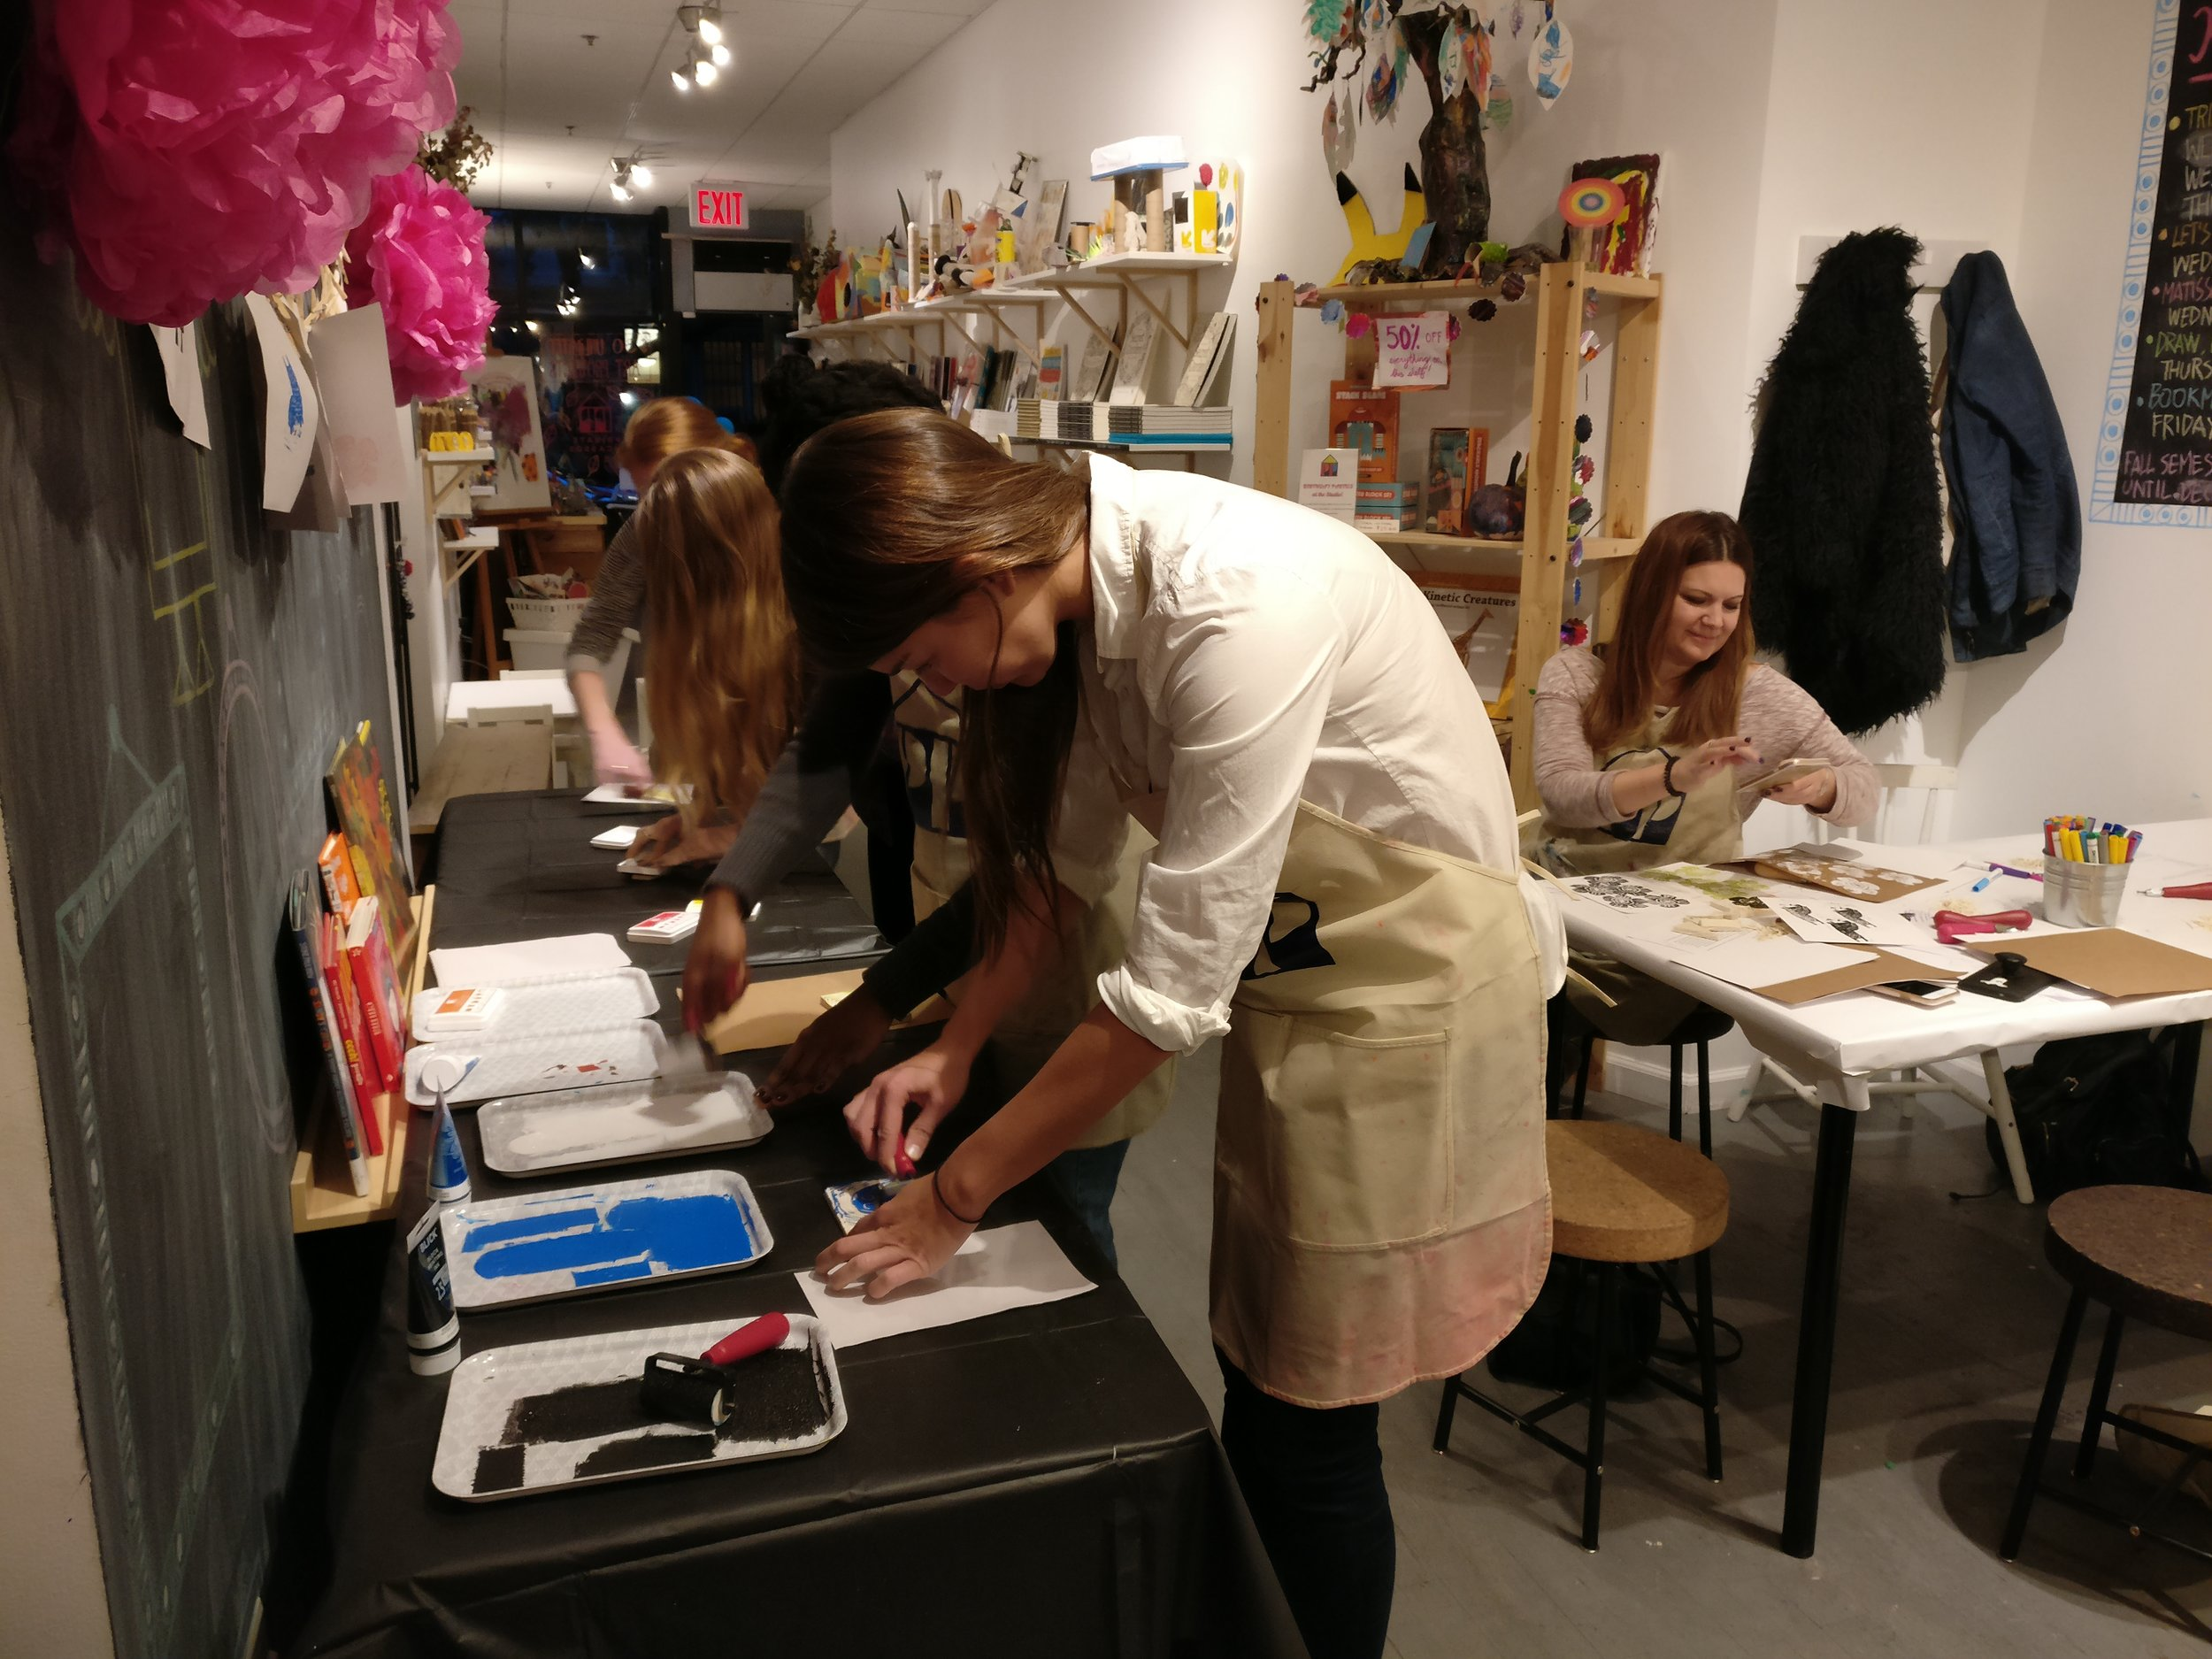 Printmaking adult @ studio 2.jpg